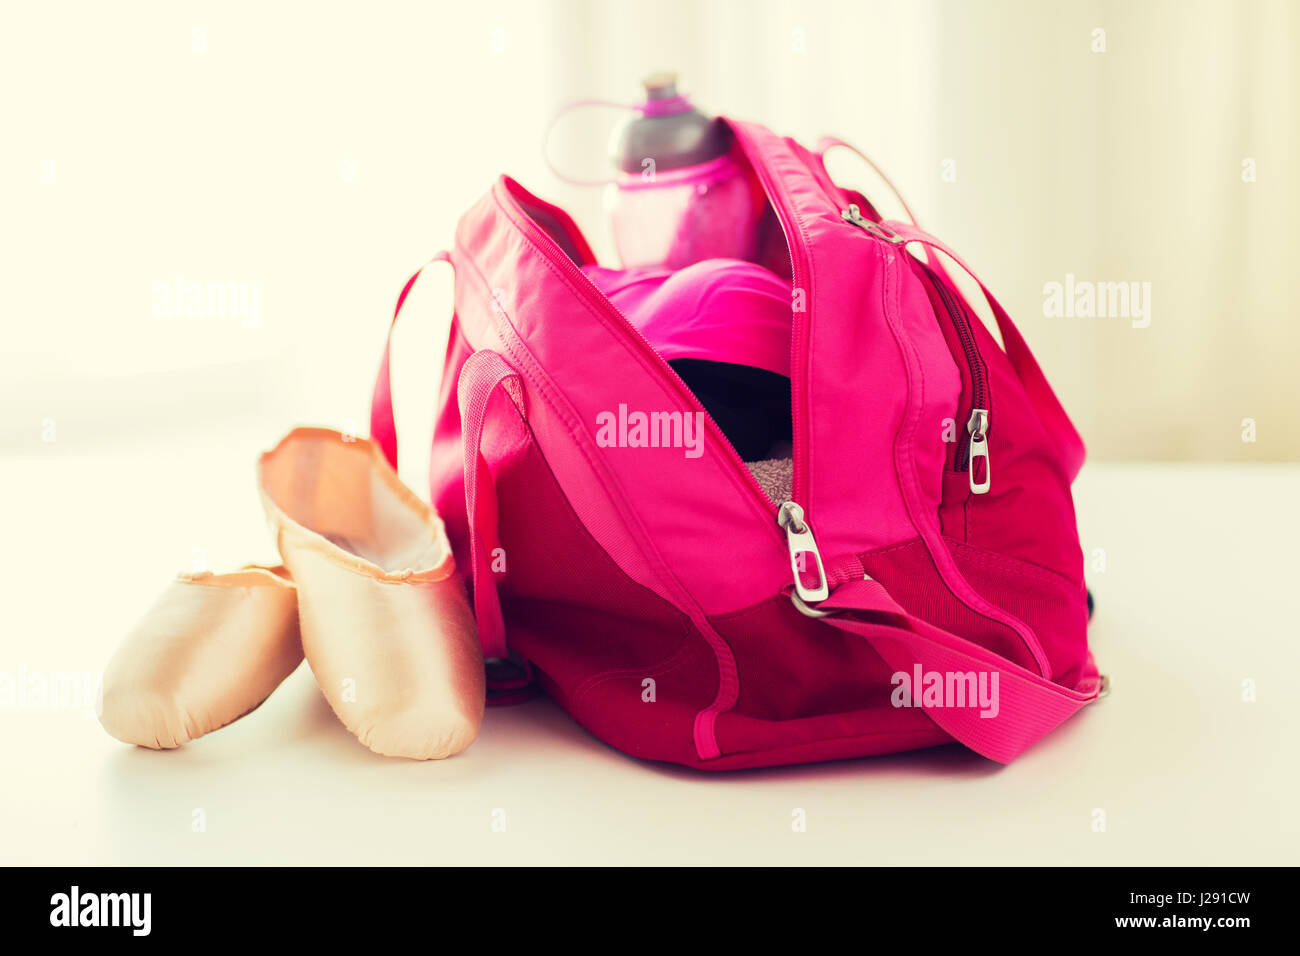 26fe10b486 close up of pointe shoes and sports bag Stock Photo  139110969 - Alamy